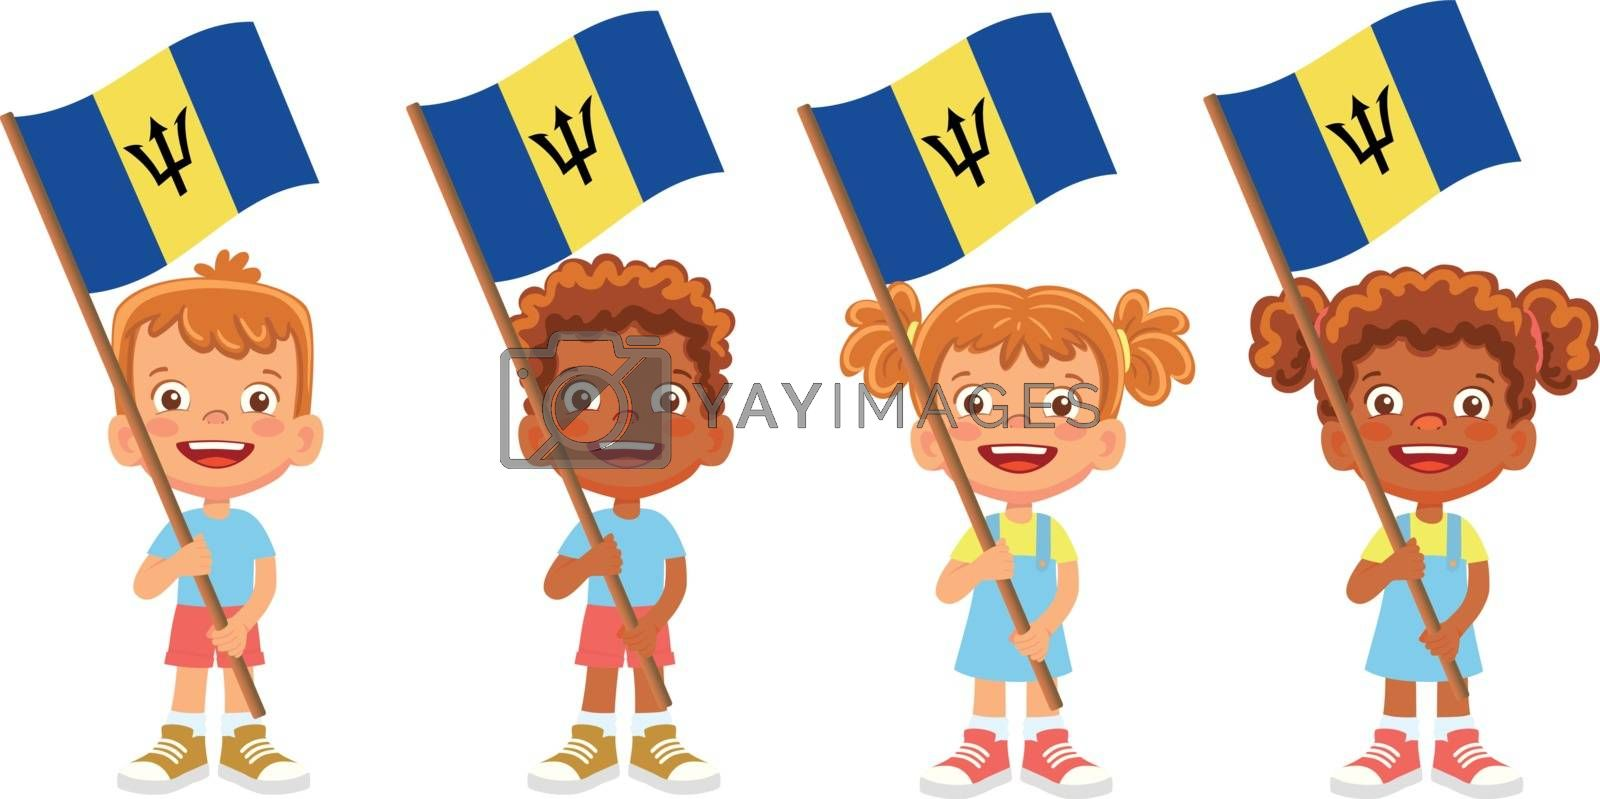 Barbados flag in hand. Children holding flag. National flag of Barbados vector